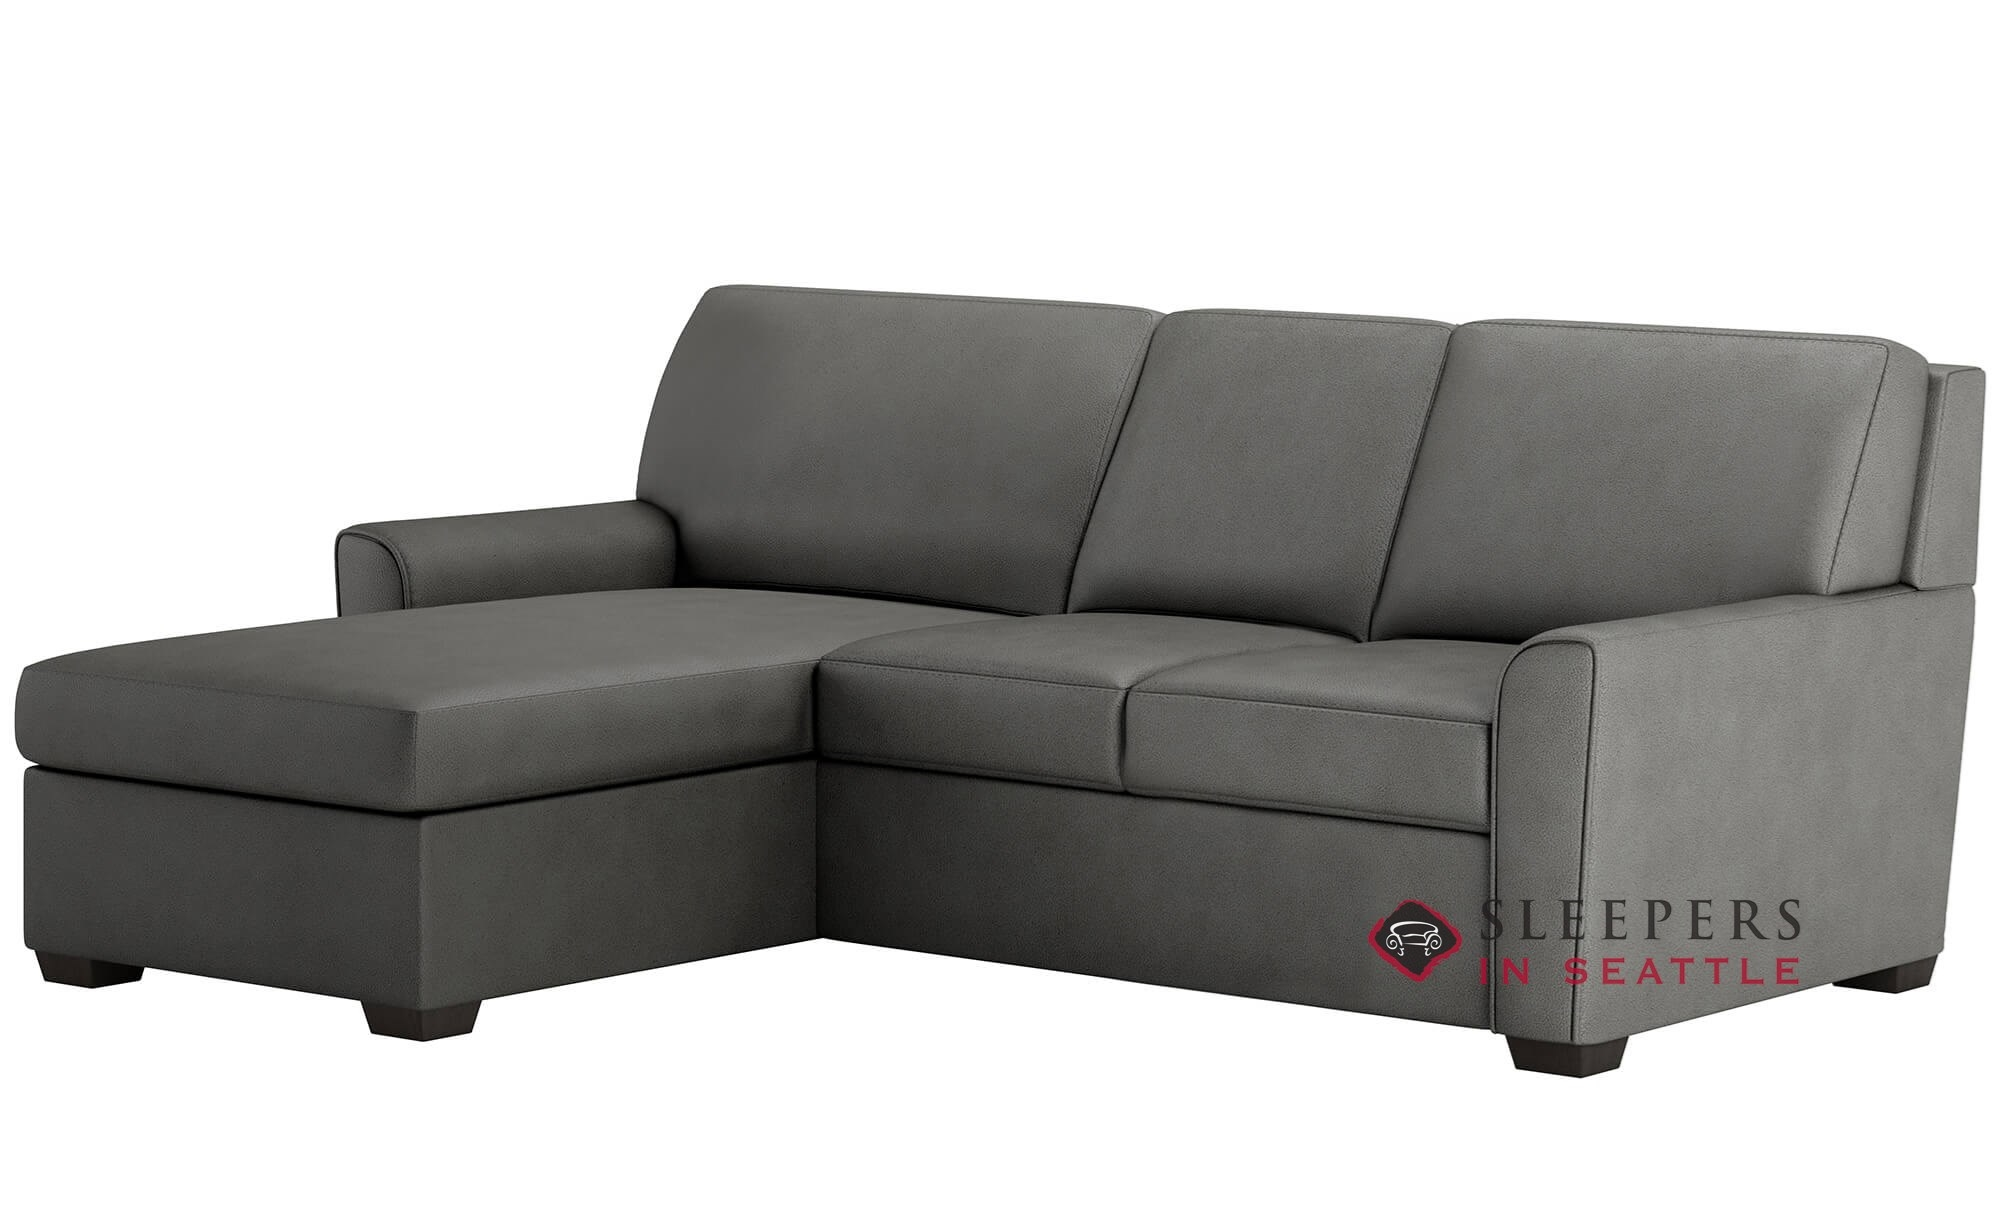 Awe Inspiring American Leather Klein Queen Plus With Chaise Sectional Comfort Sleeper Generation Viii Cjindustries Chair Design For Home Cjindustriesco